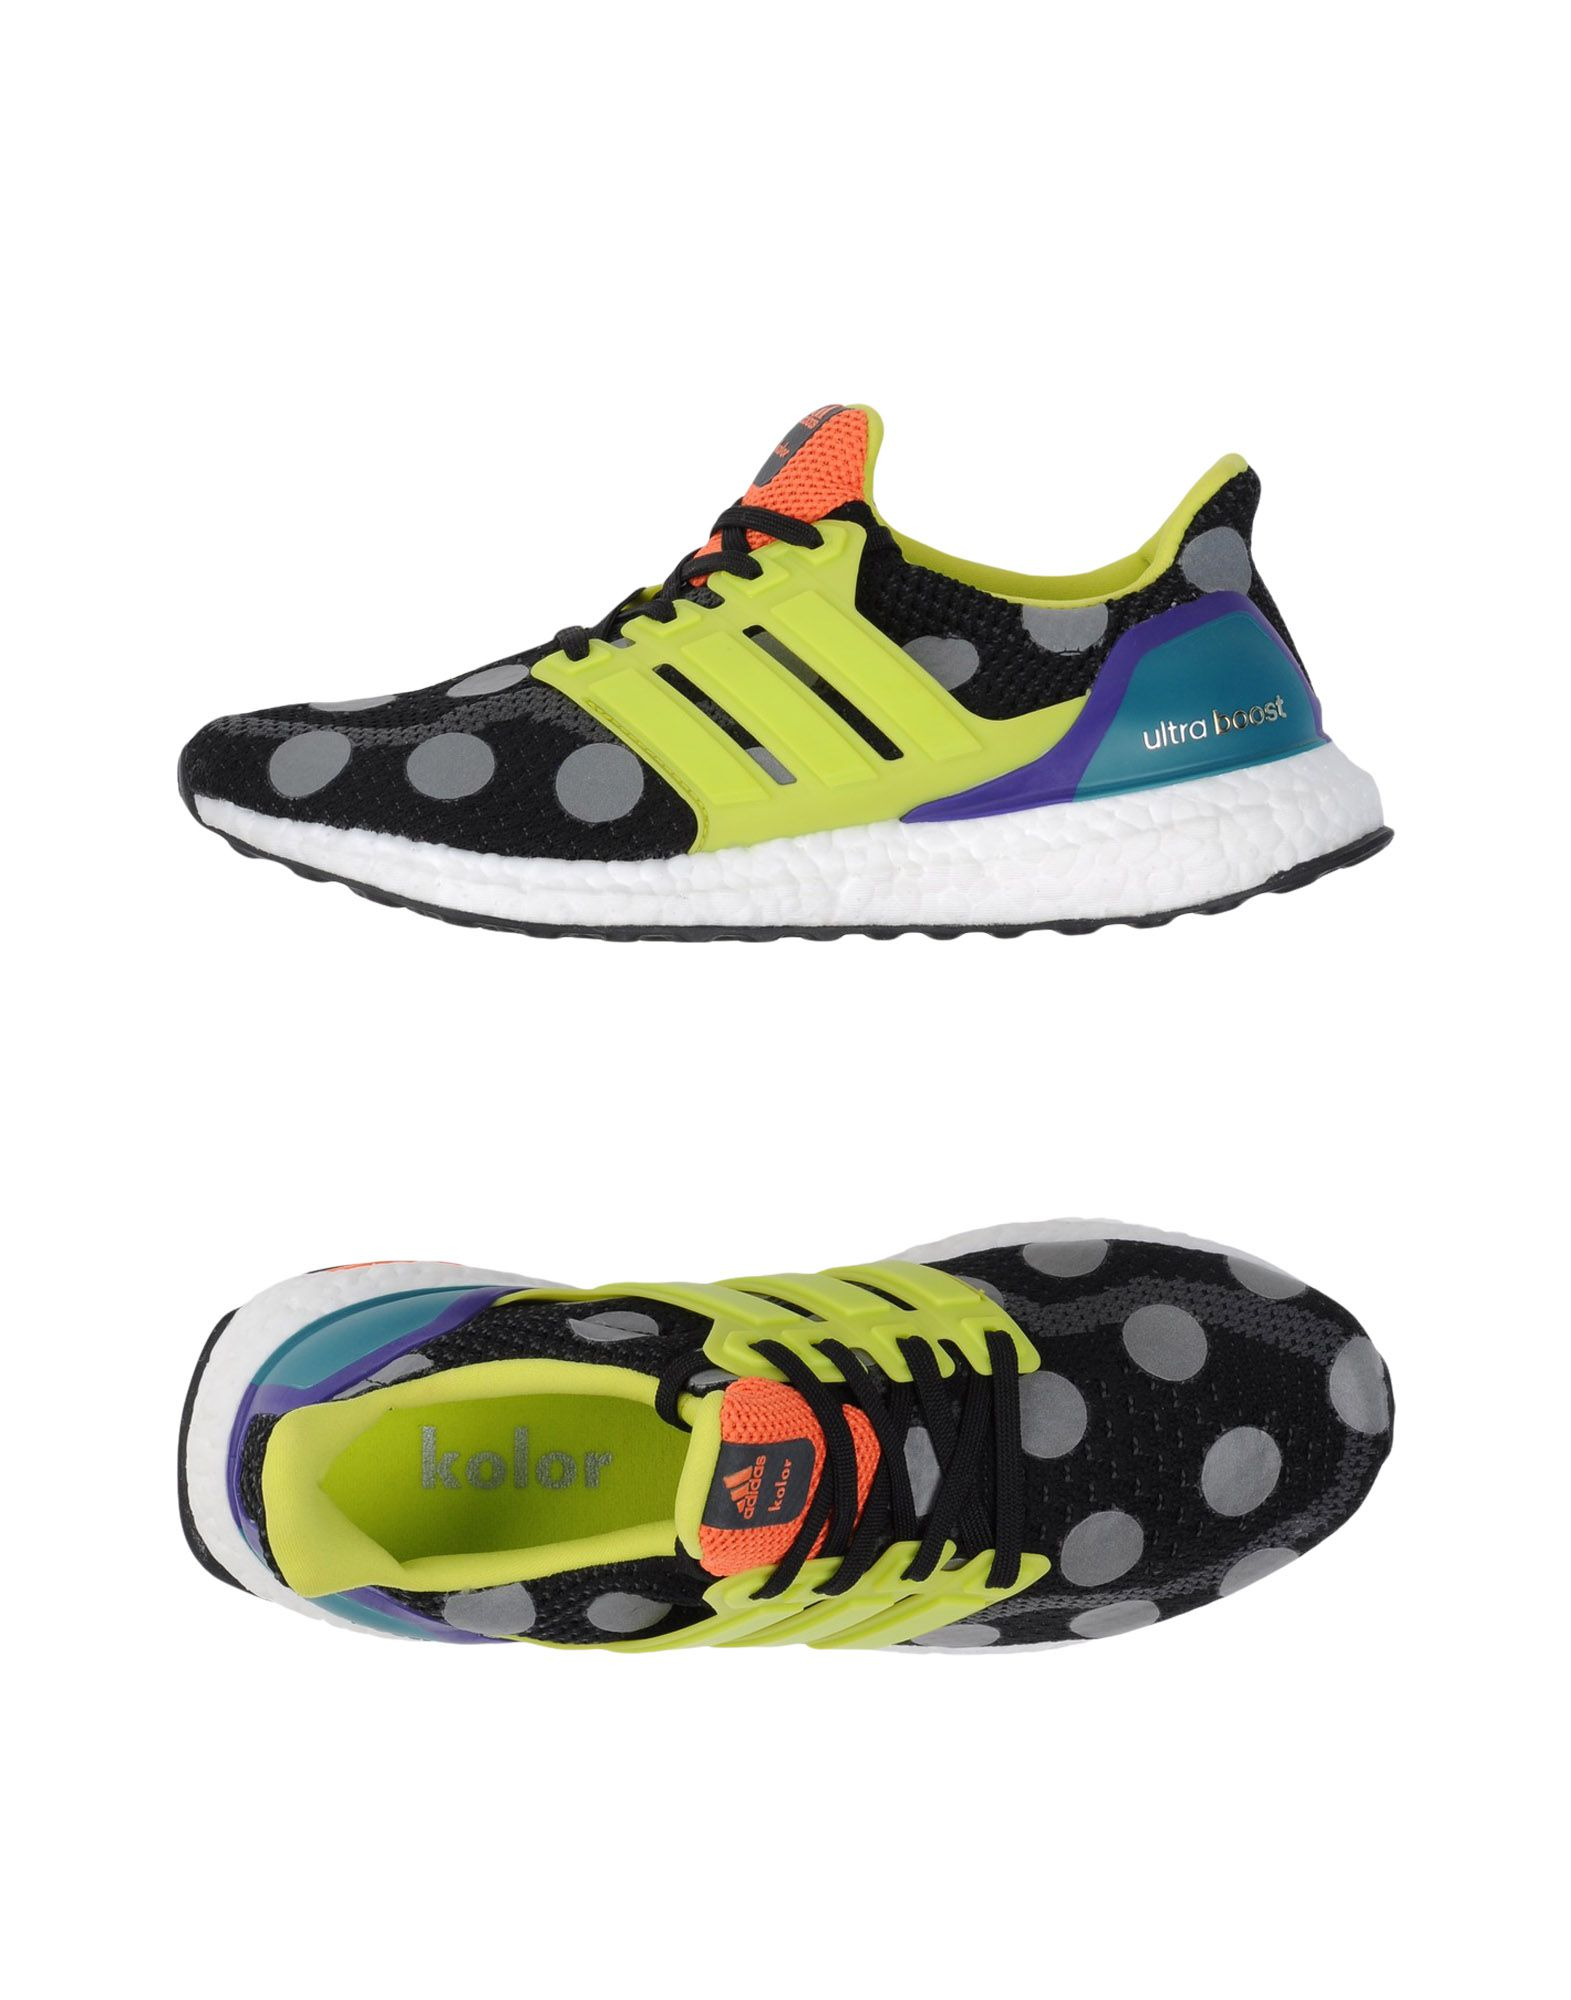 Adidas By Kolor Sneakers - Men Adidas By Kolor Kolor Kolor Sneakers online on  Canada - 11317623CX 672476